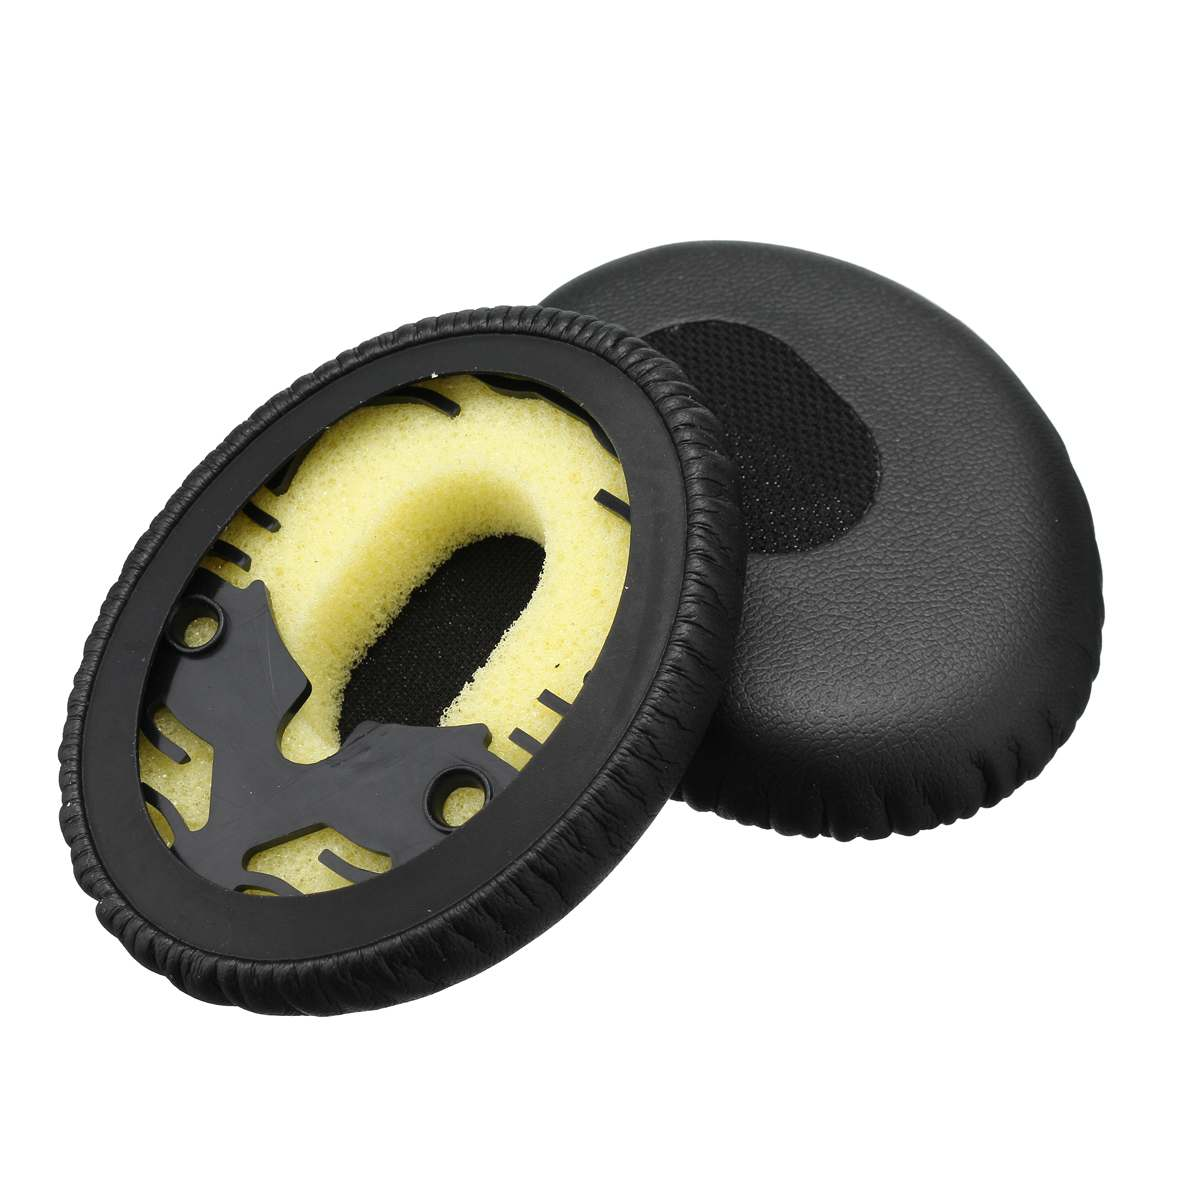 Top 99 Cheap Products Bose Headphones Ear Pads In Romo